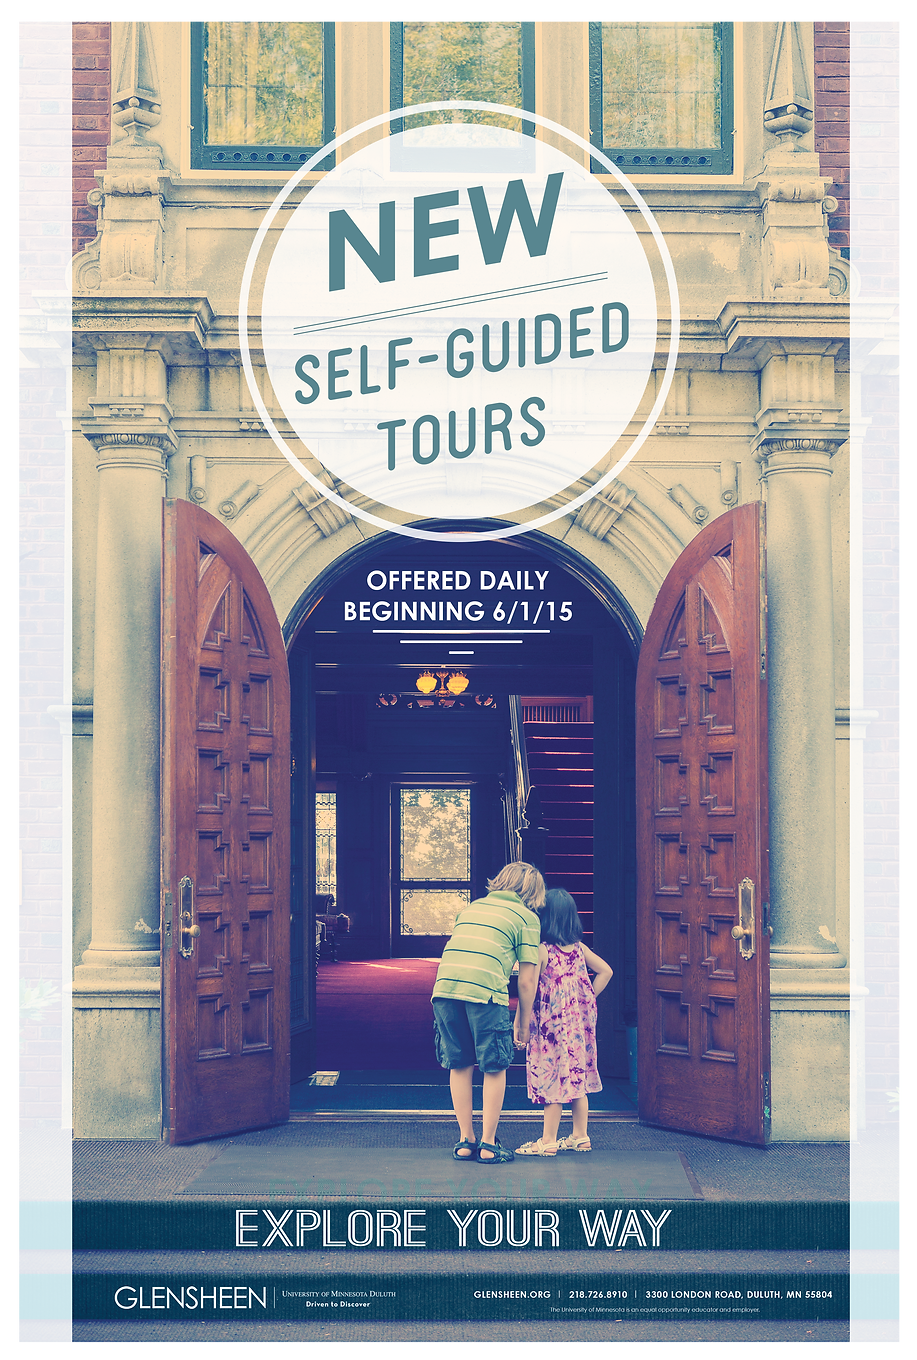 Self-Guided Tour Poster Design